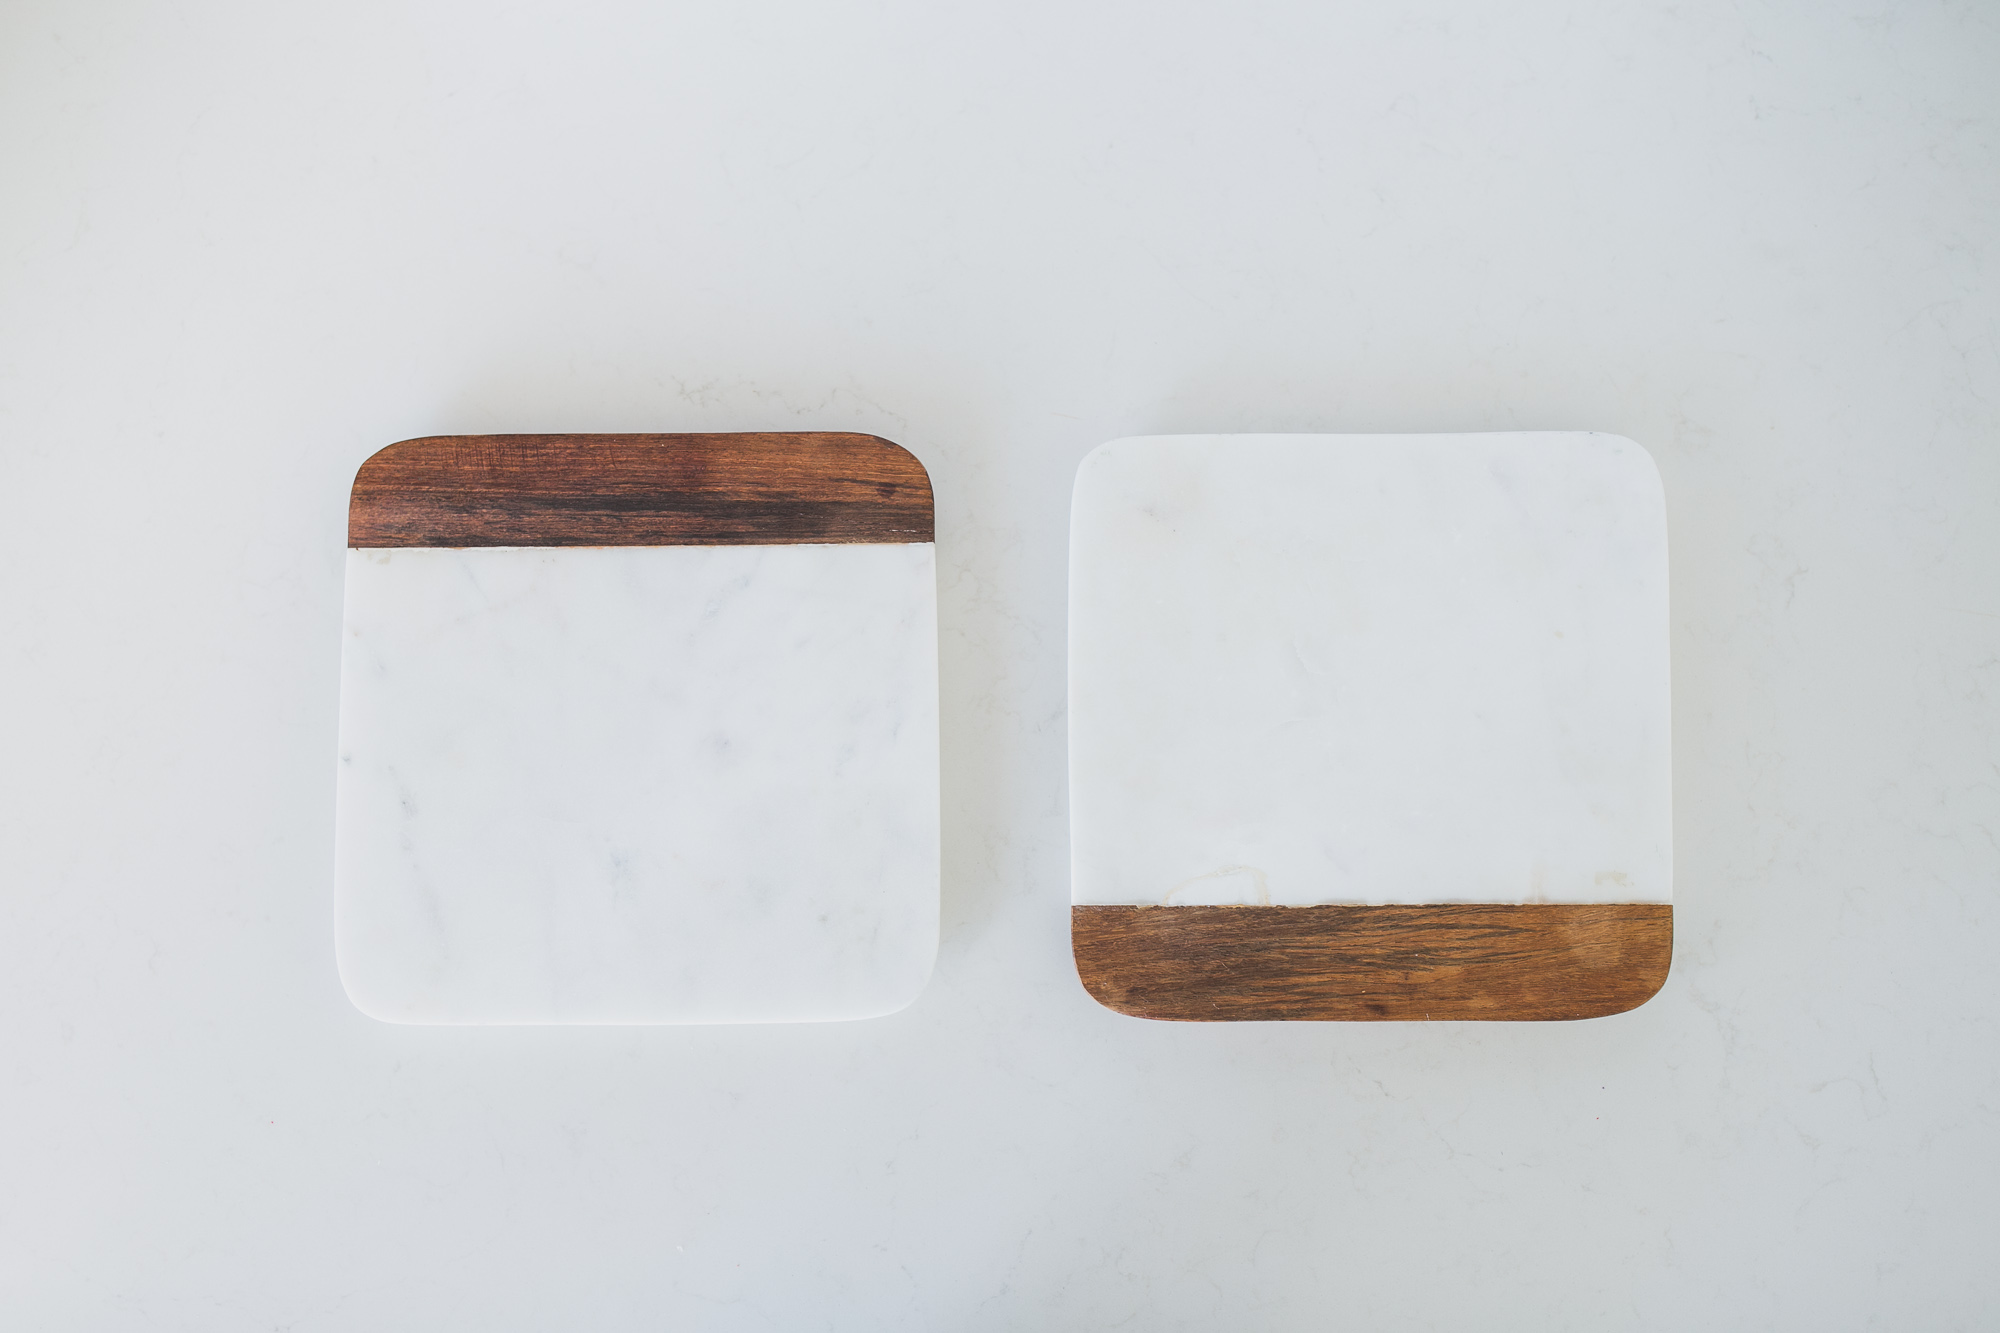 MARBLE WOOD SQUARE BOARD